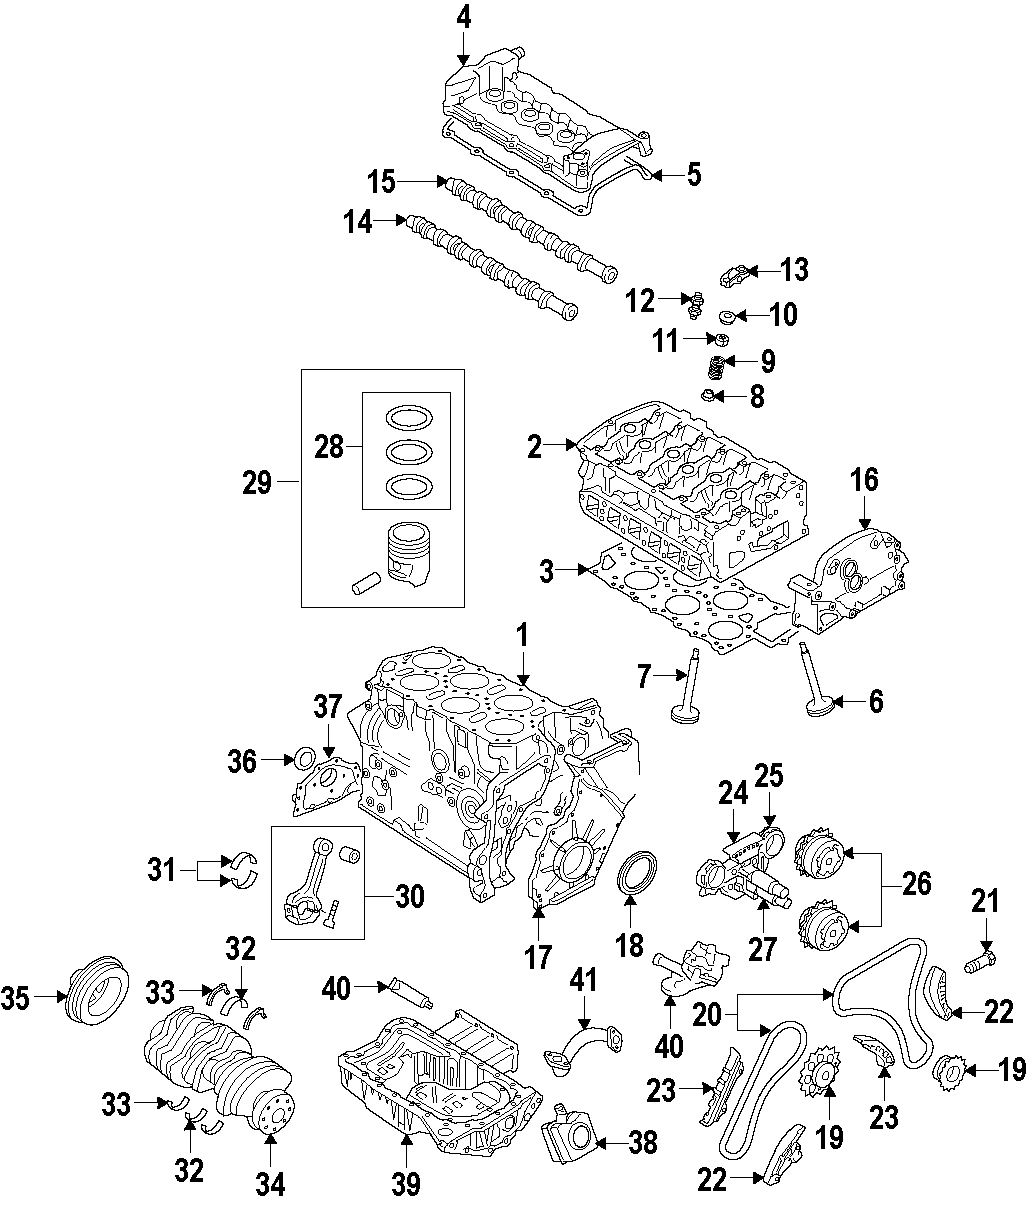 Volkswagen Touareg Timing Chain Primary